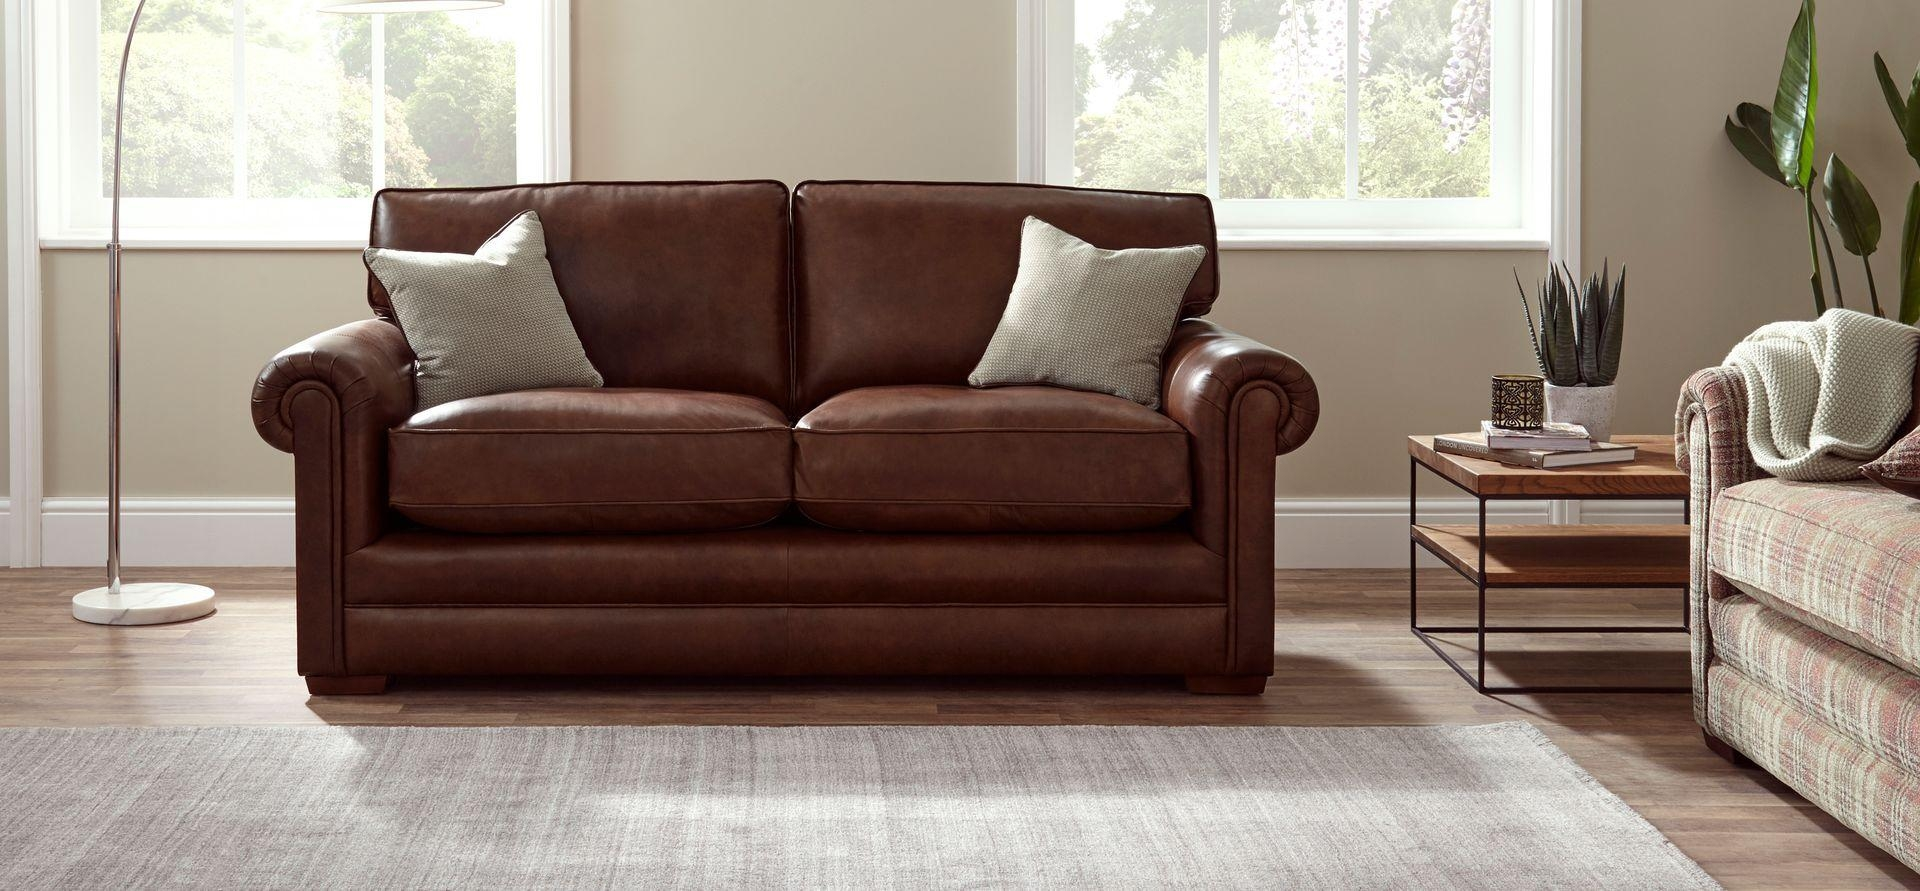 Parker Knoll Canterbury Large 2 Seater Leather Sofa | House Of Pertaining To Canterbury Leather Sofas (View 20 of 20)